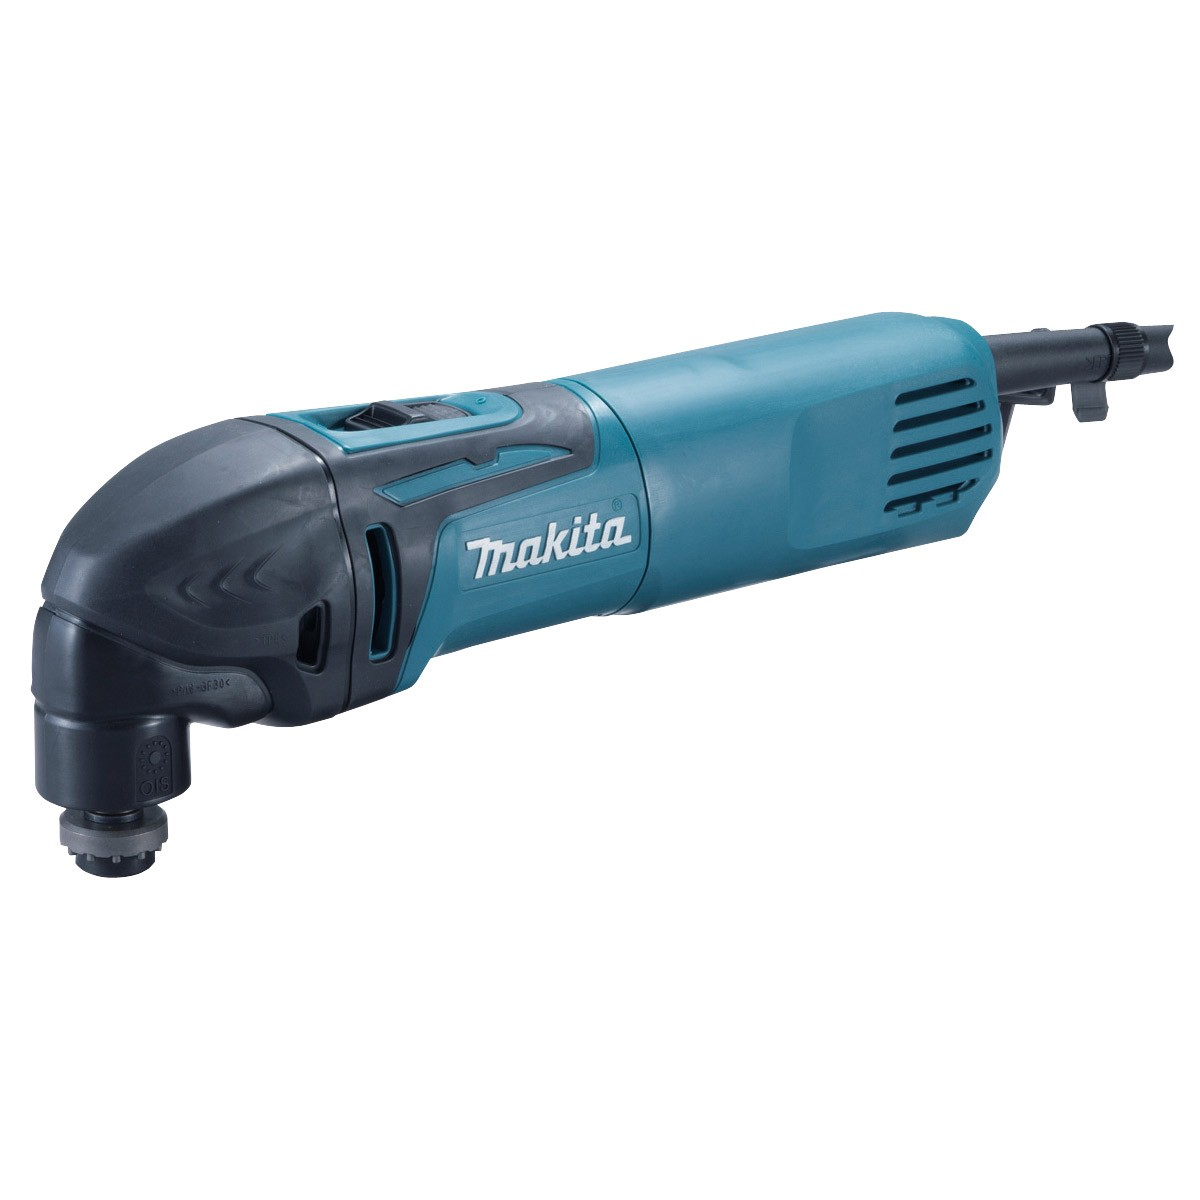 Makita TM3000C Oscillating Multi Cutter 240v